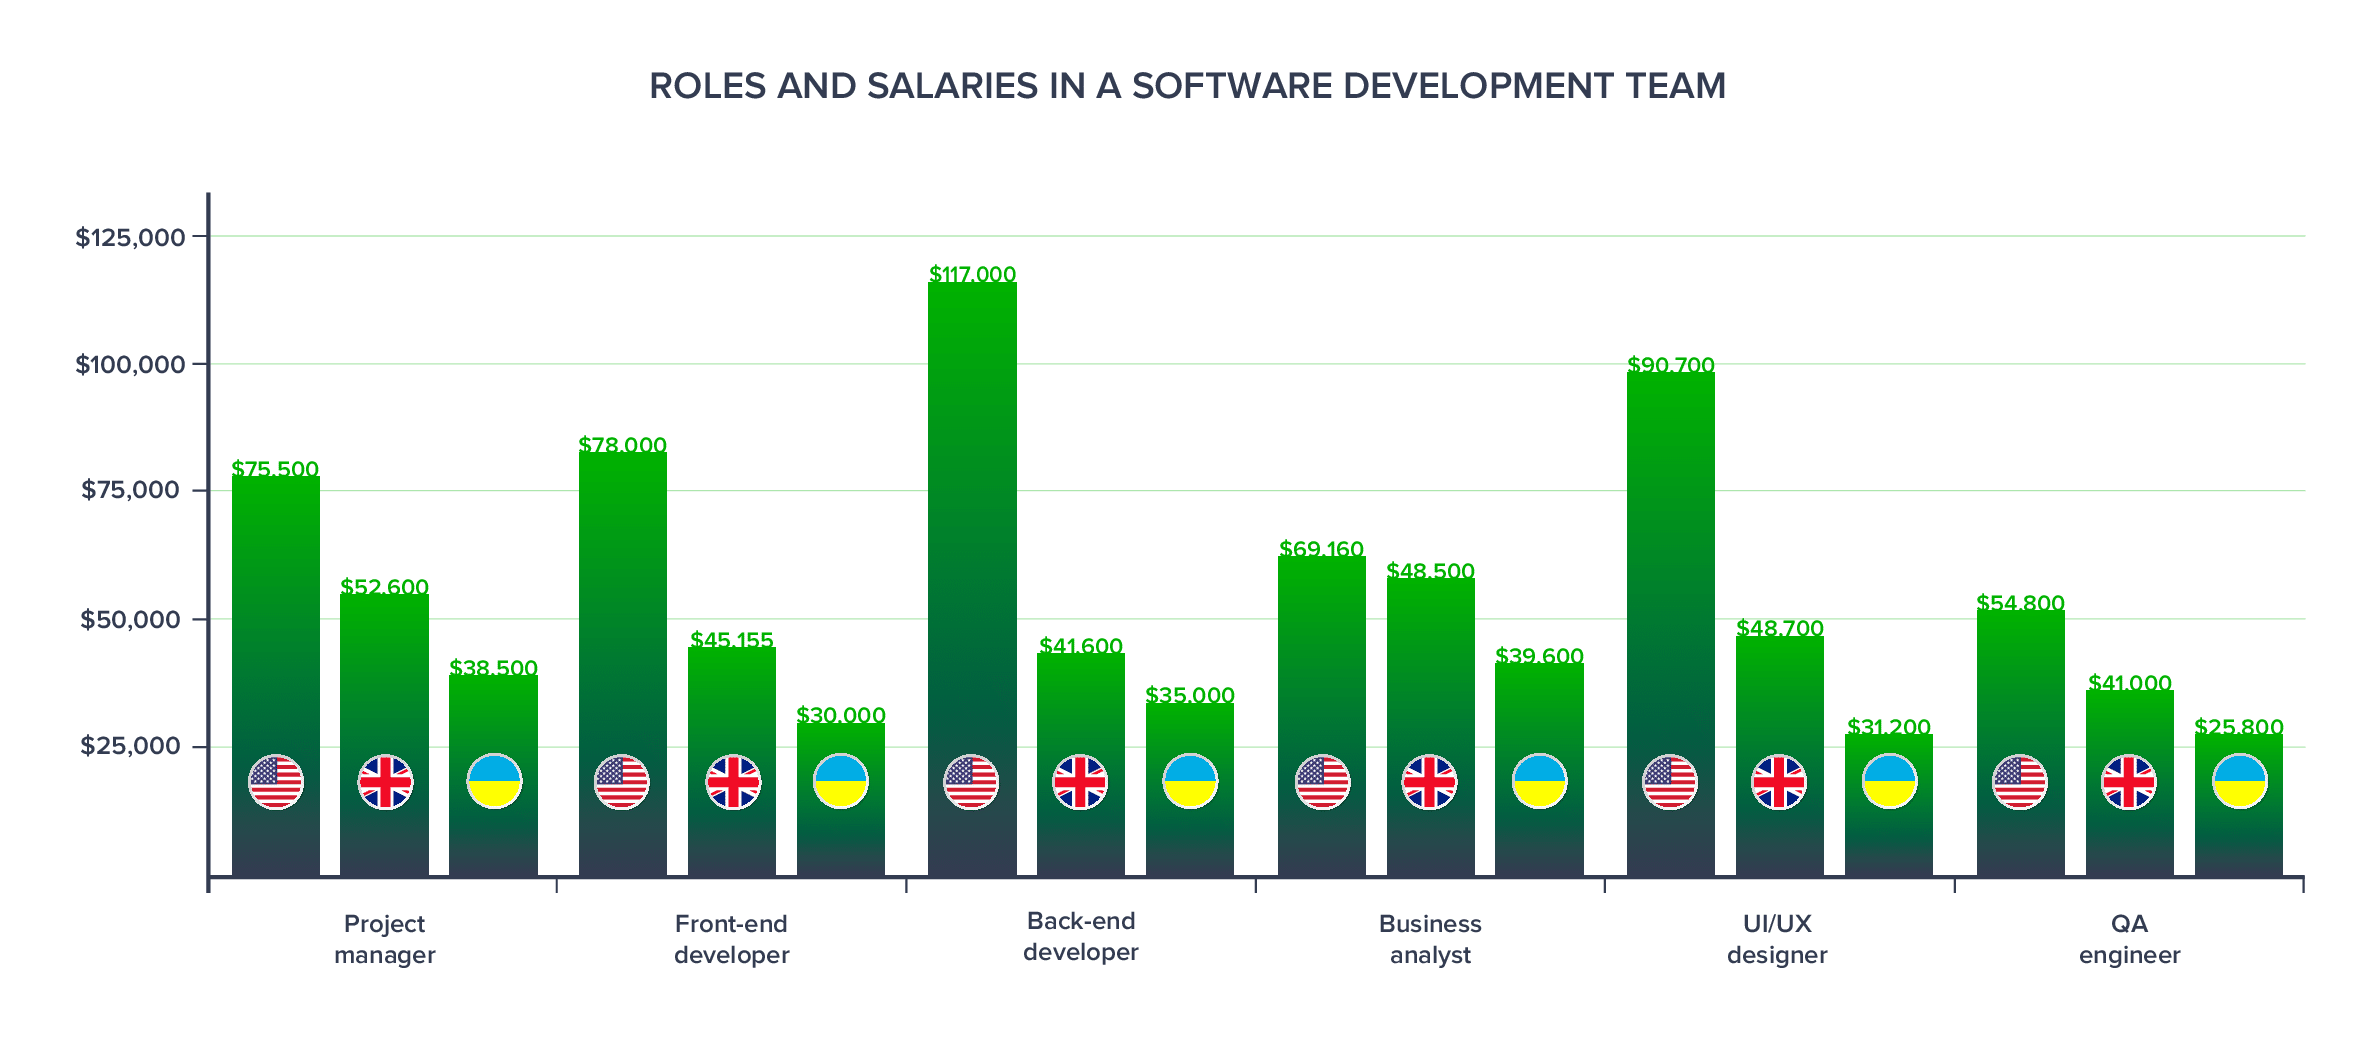 Roles and Salaries in a Software Development Team - IT Outsourcing and Staff Augmentation